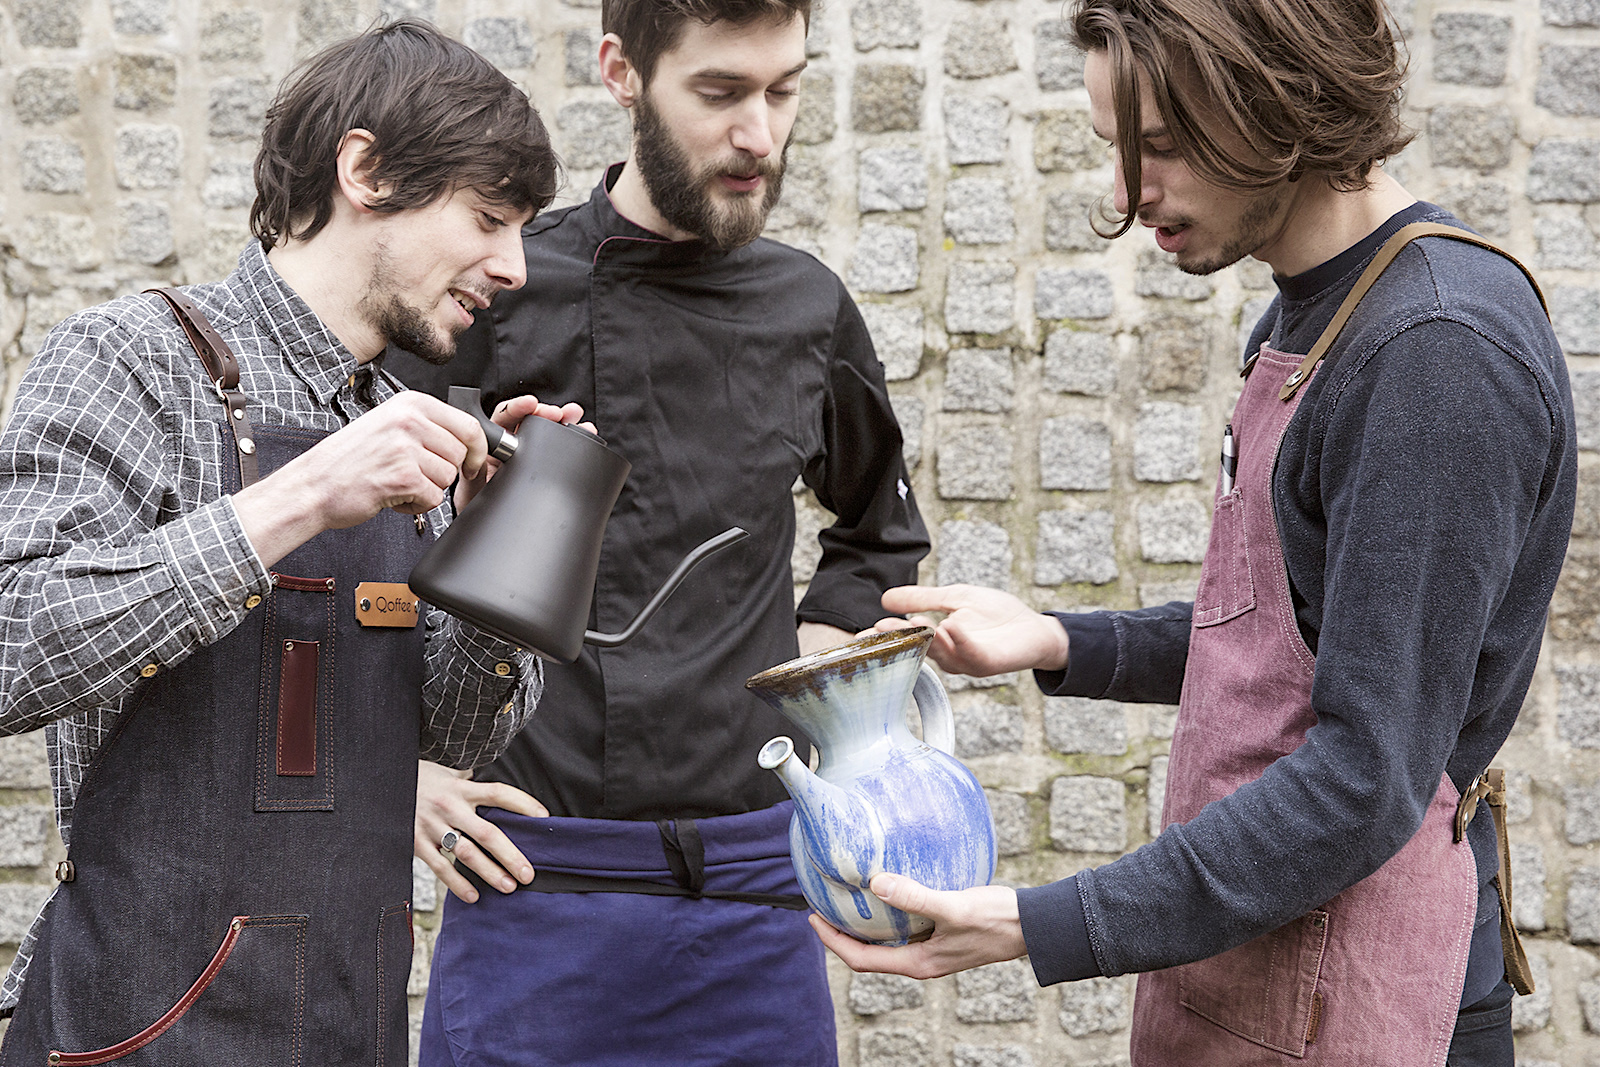 The three founders of La Main Noire organic tea and coffee shop in Paris, making a new concoction.